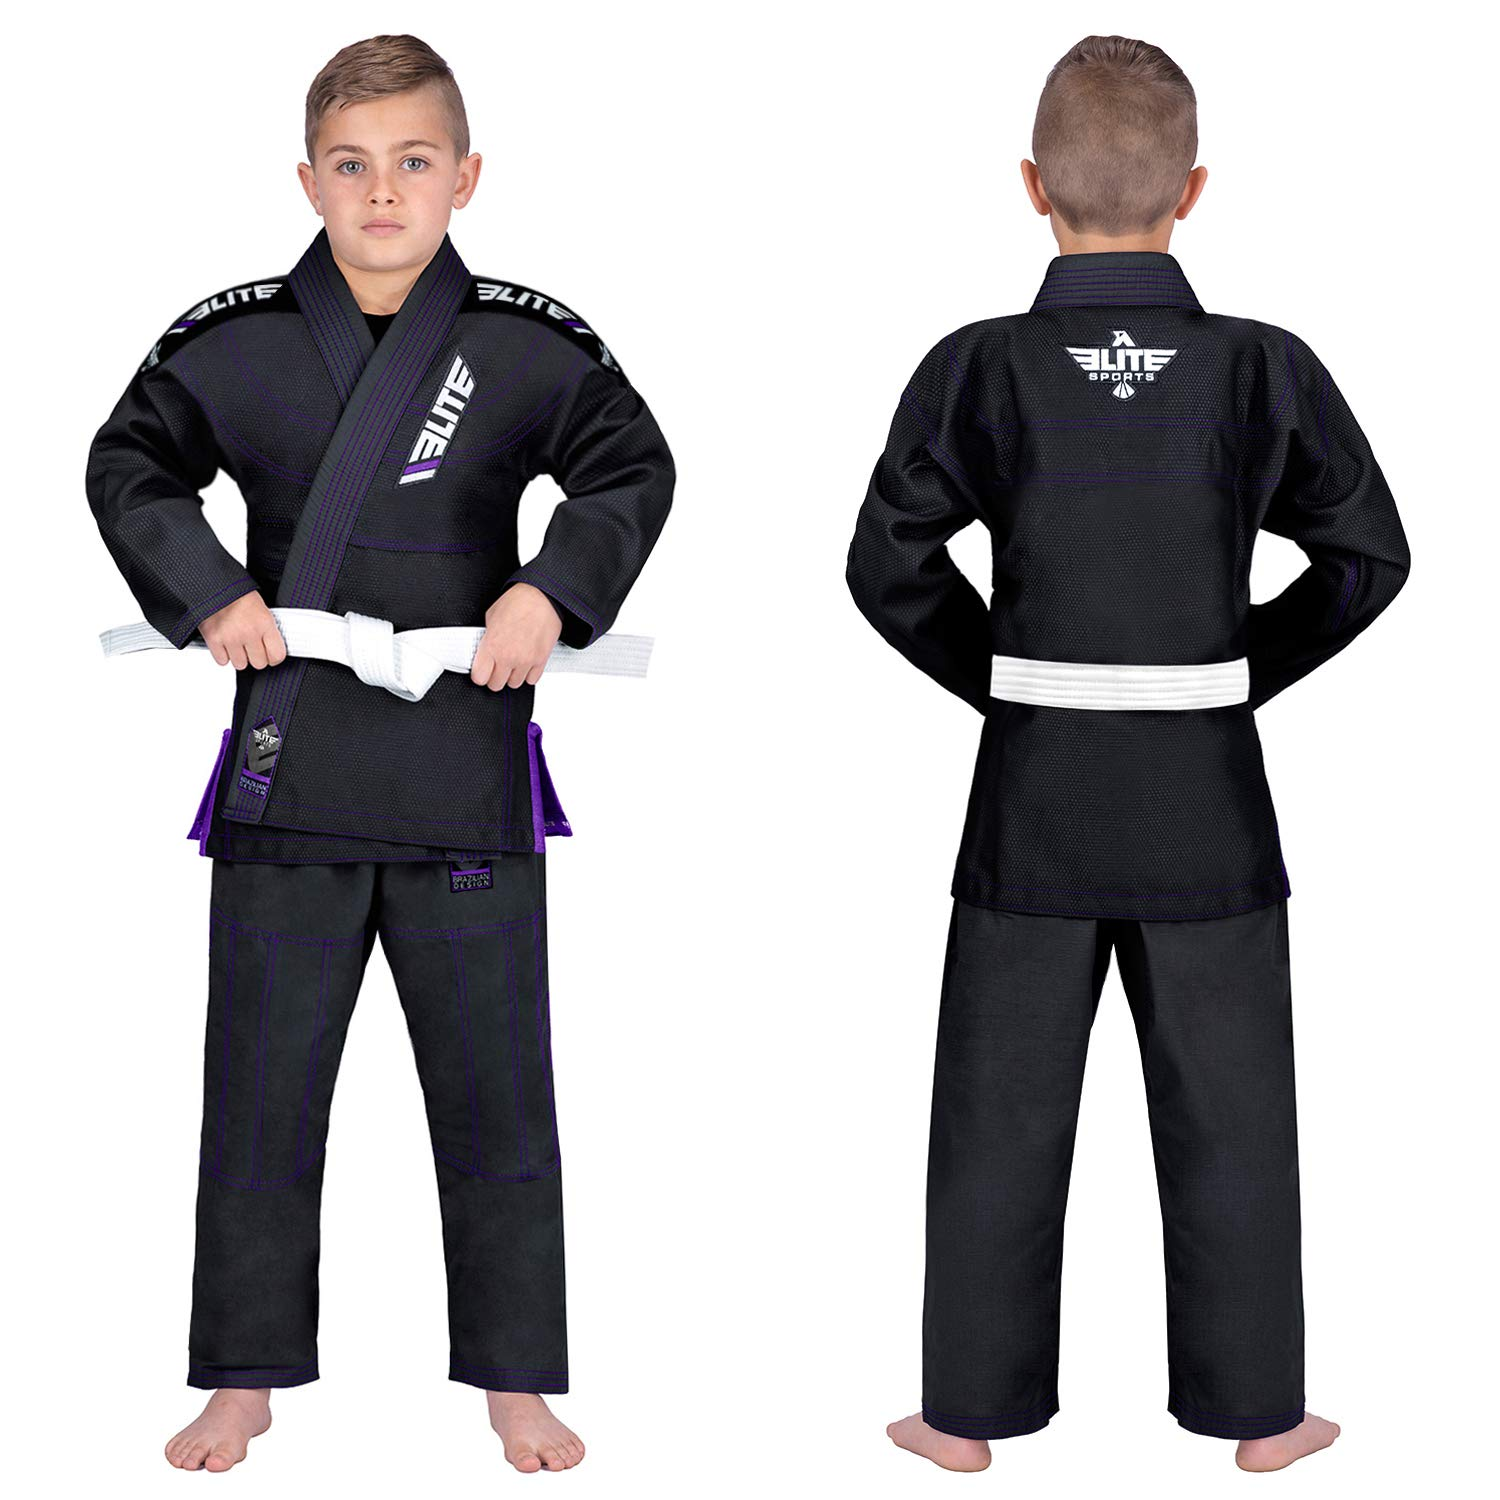 Elite Sports IBJJF Ultra Light BJJ Brazilian Jiu Jitsu Gi for Kids w/Preshrunk Fabric & Free Belt